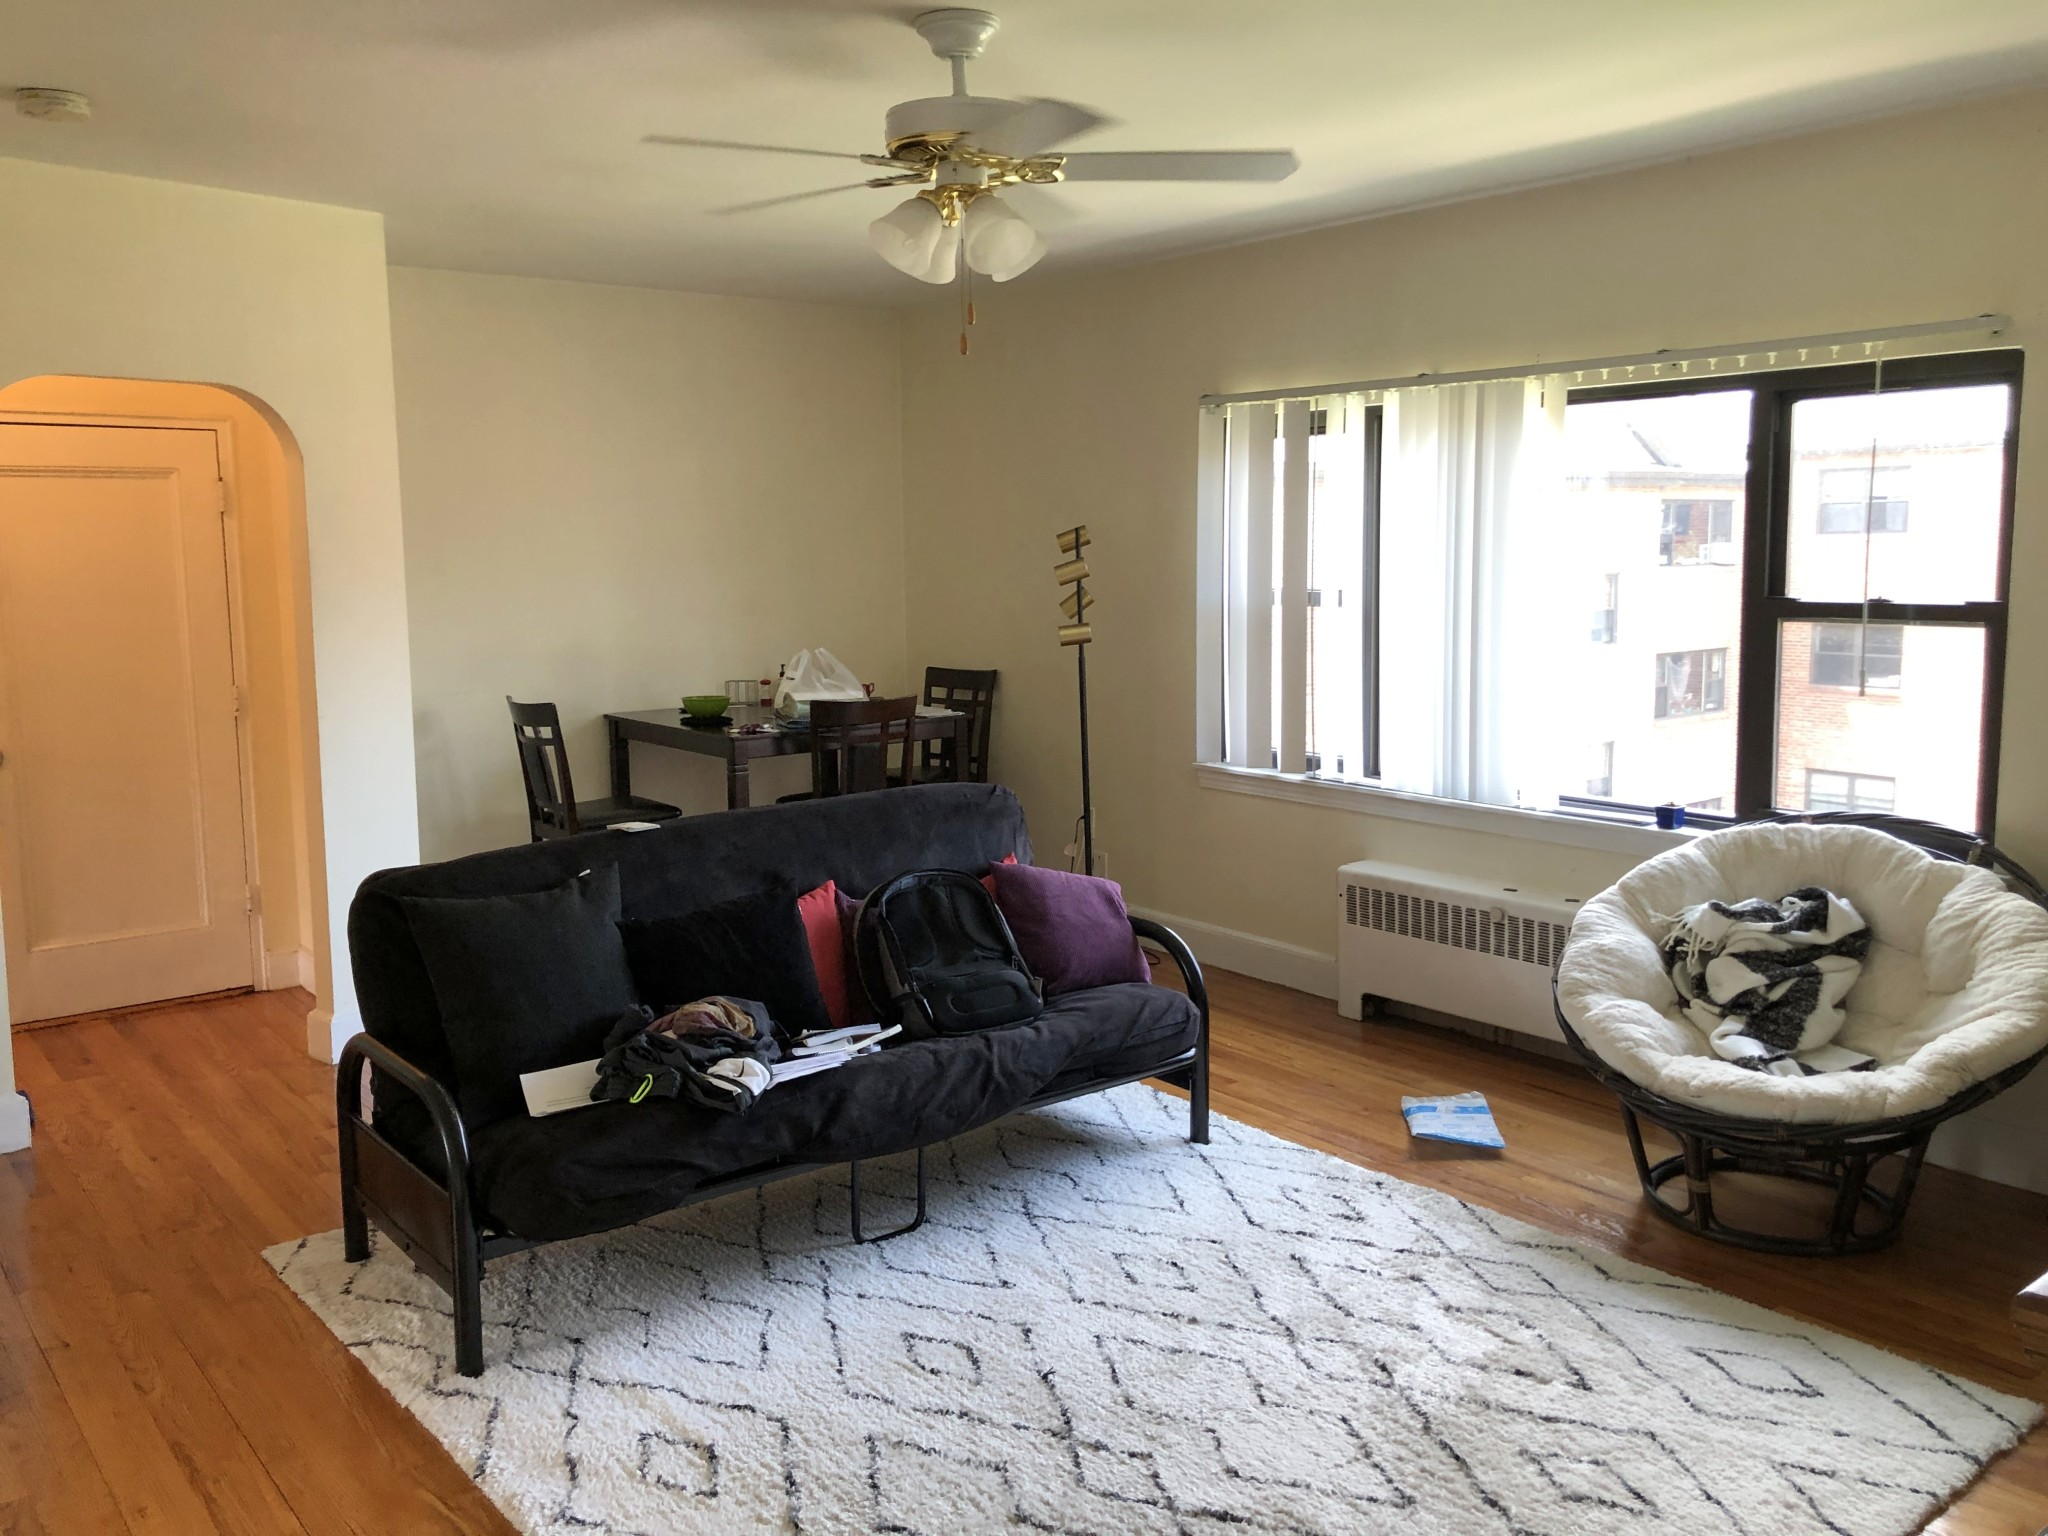 2 Beds, 1 Bath apartment in Brookline for $2,200